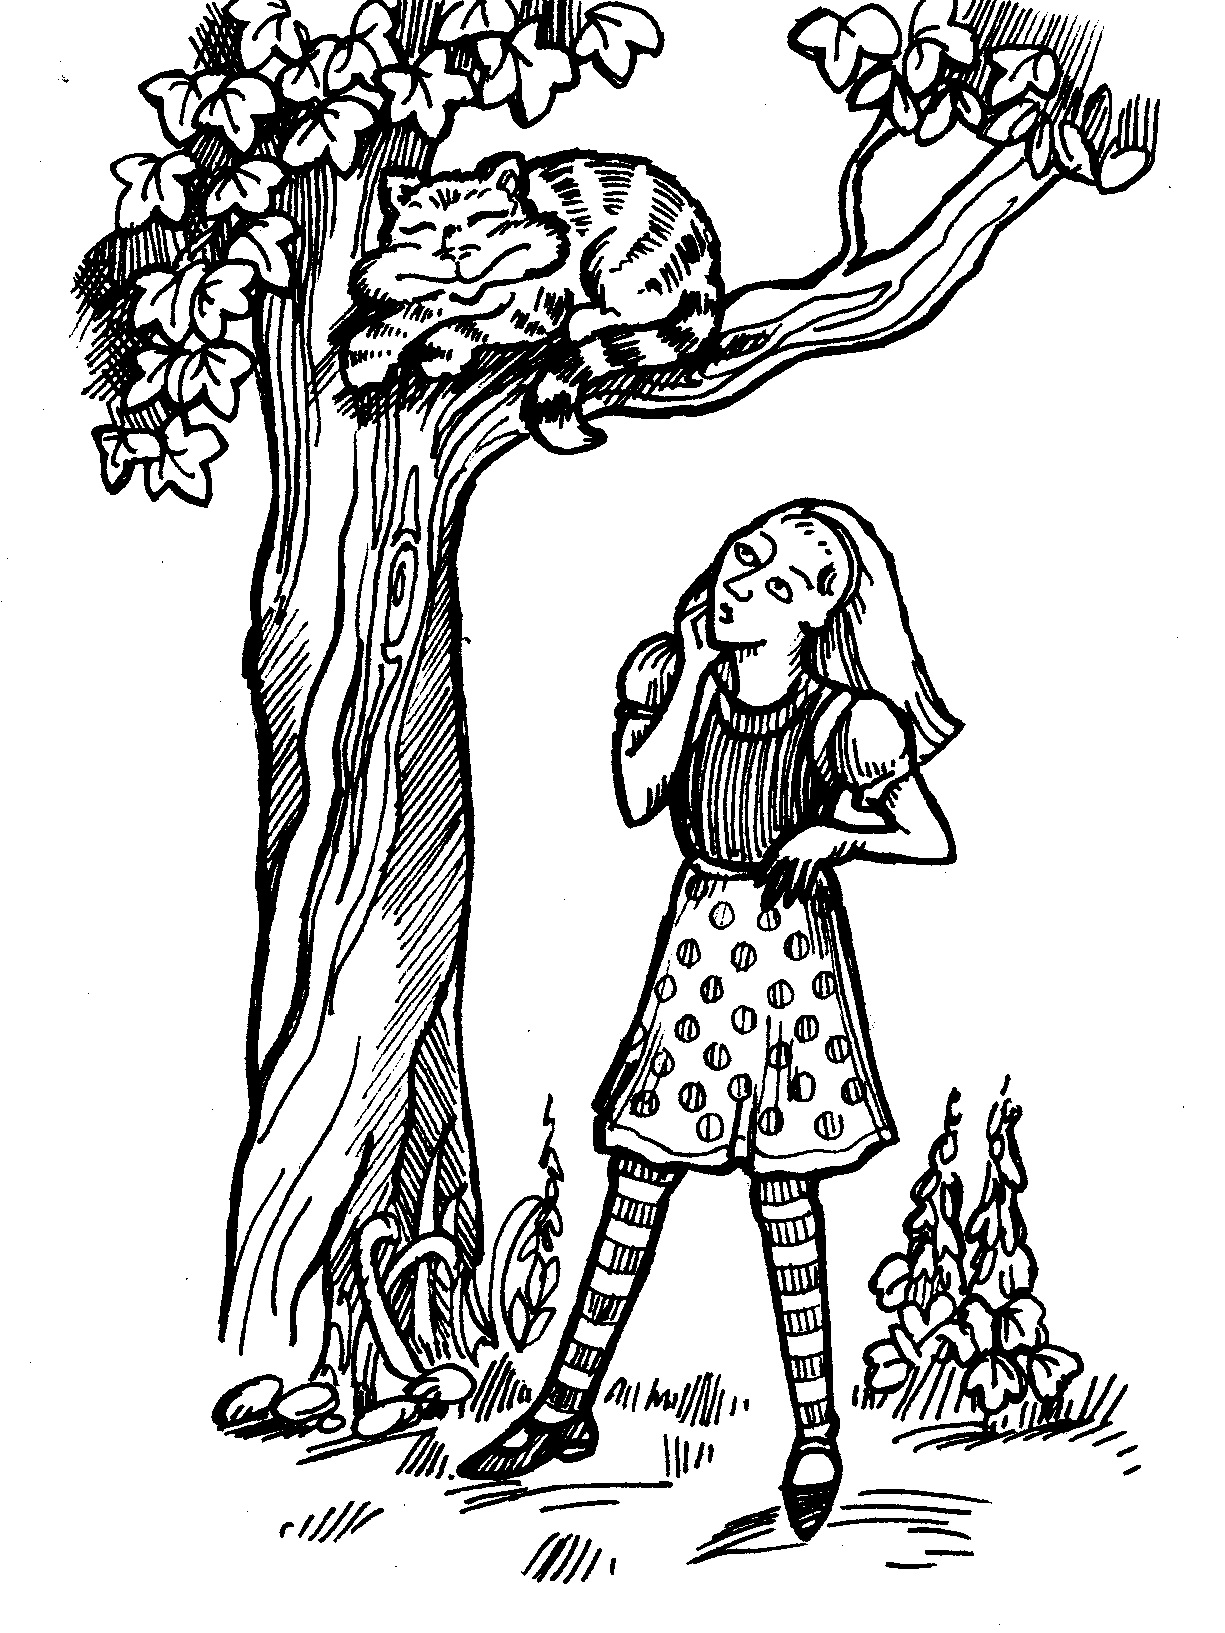 Alice in Wonderland looking up athe cheshire cat.